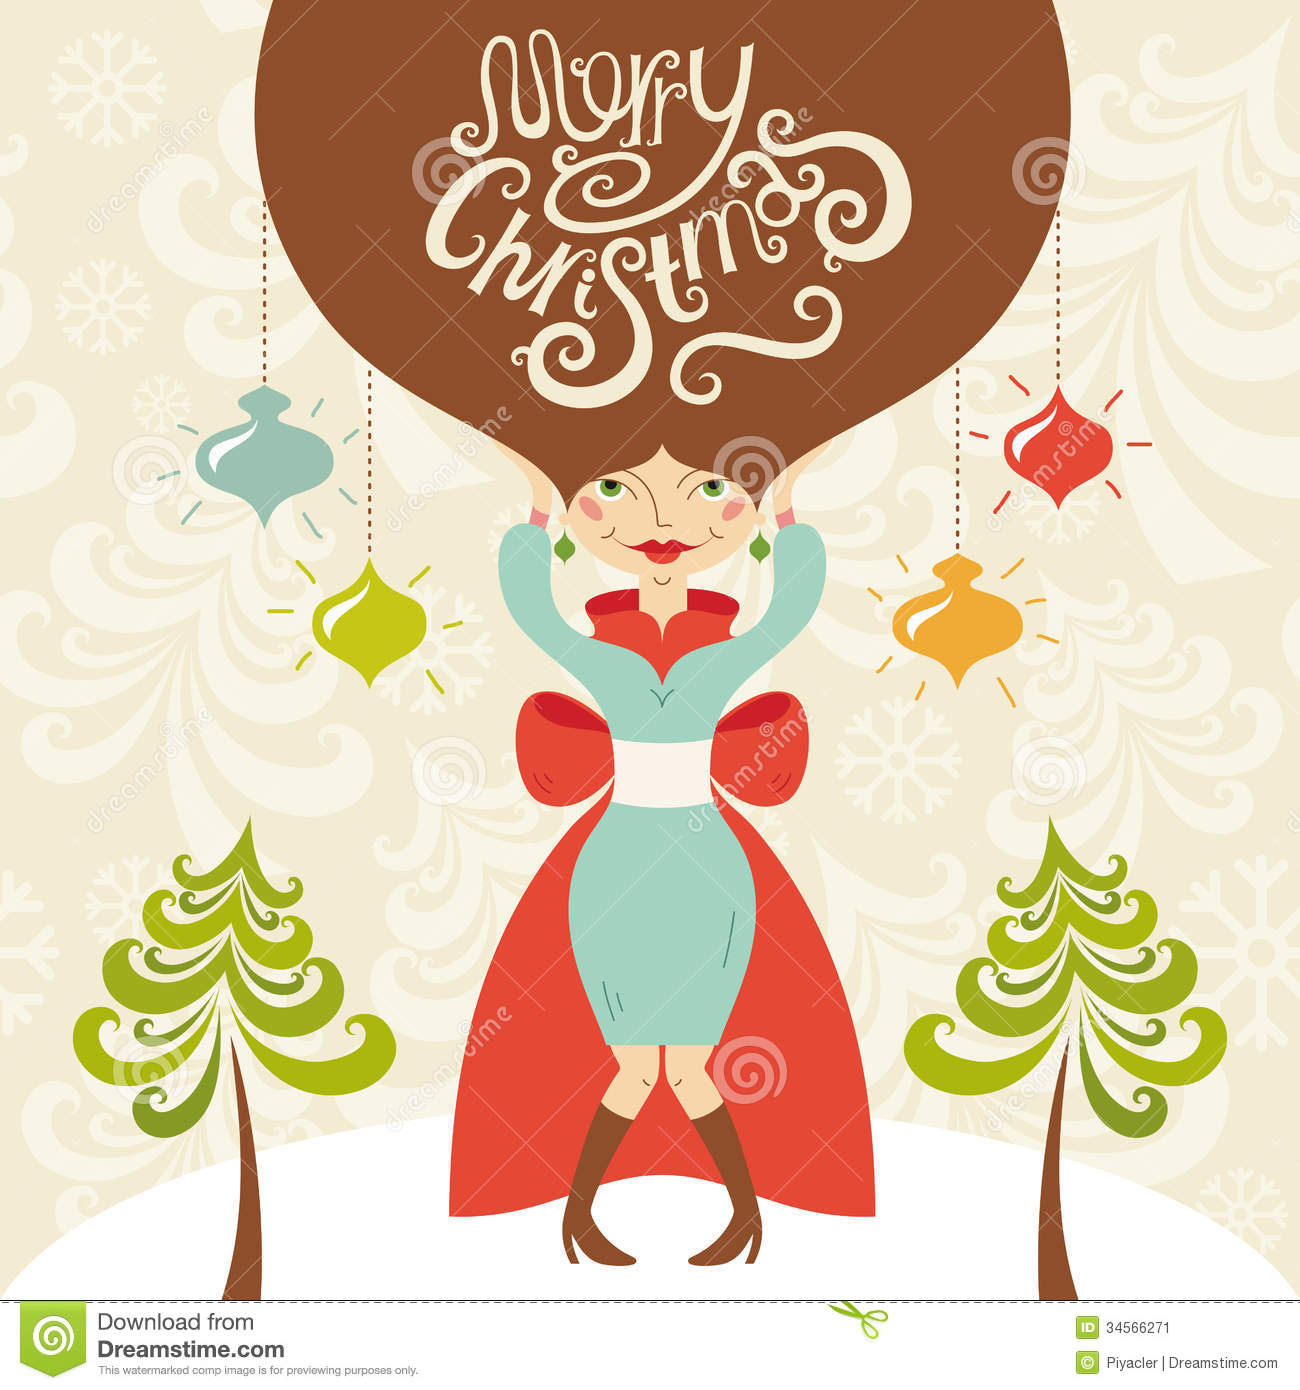 Merry Christmas Illustration.Merry Christmas Greeting Card With Beautiful Lady Stock